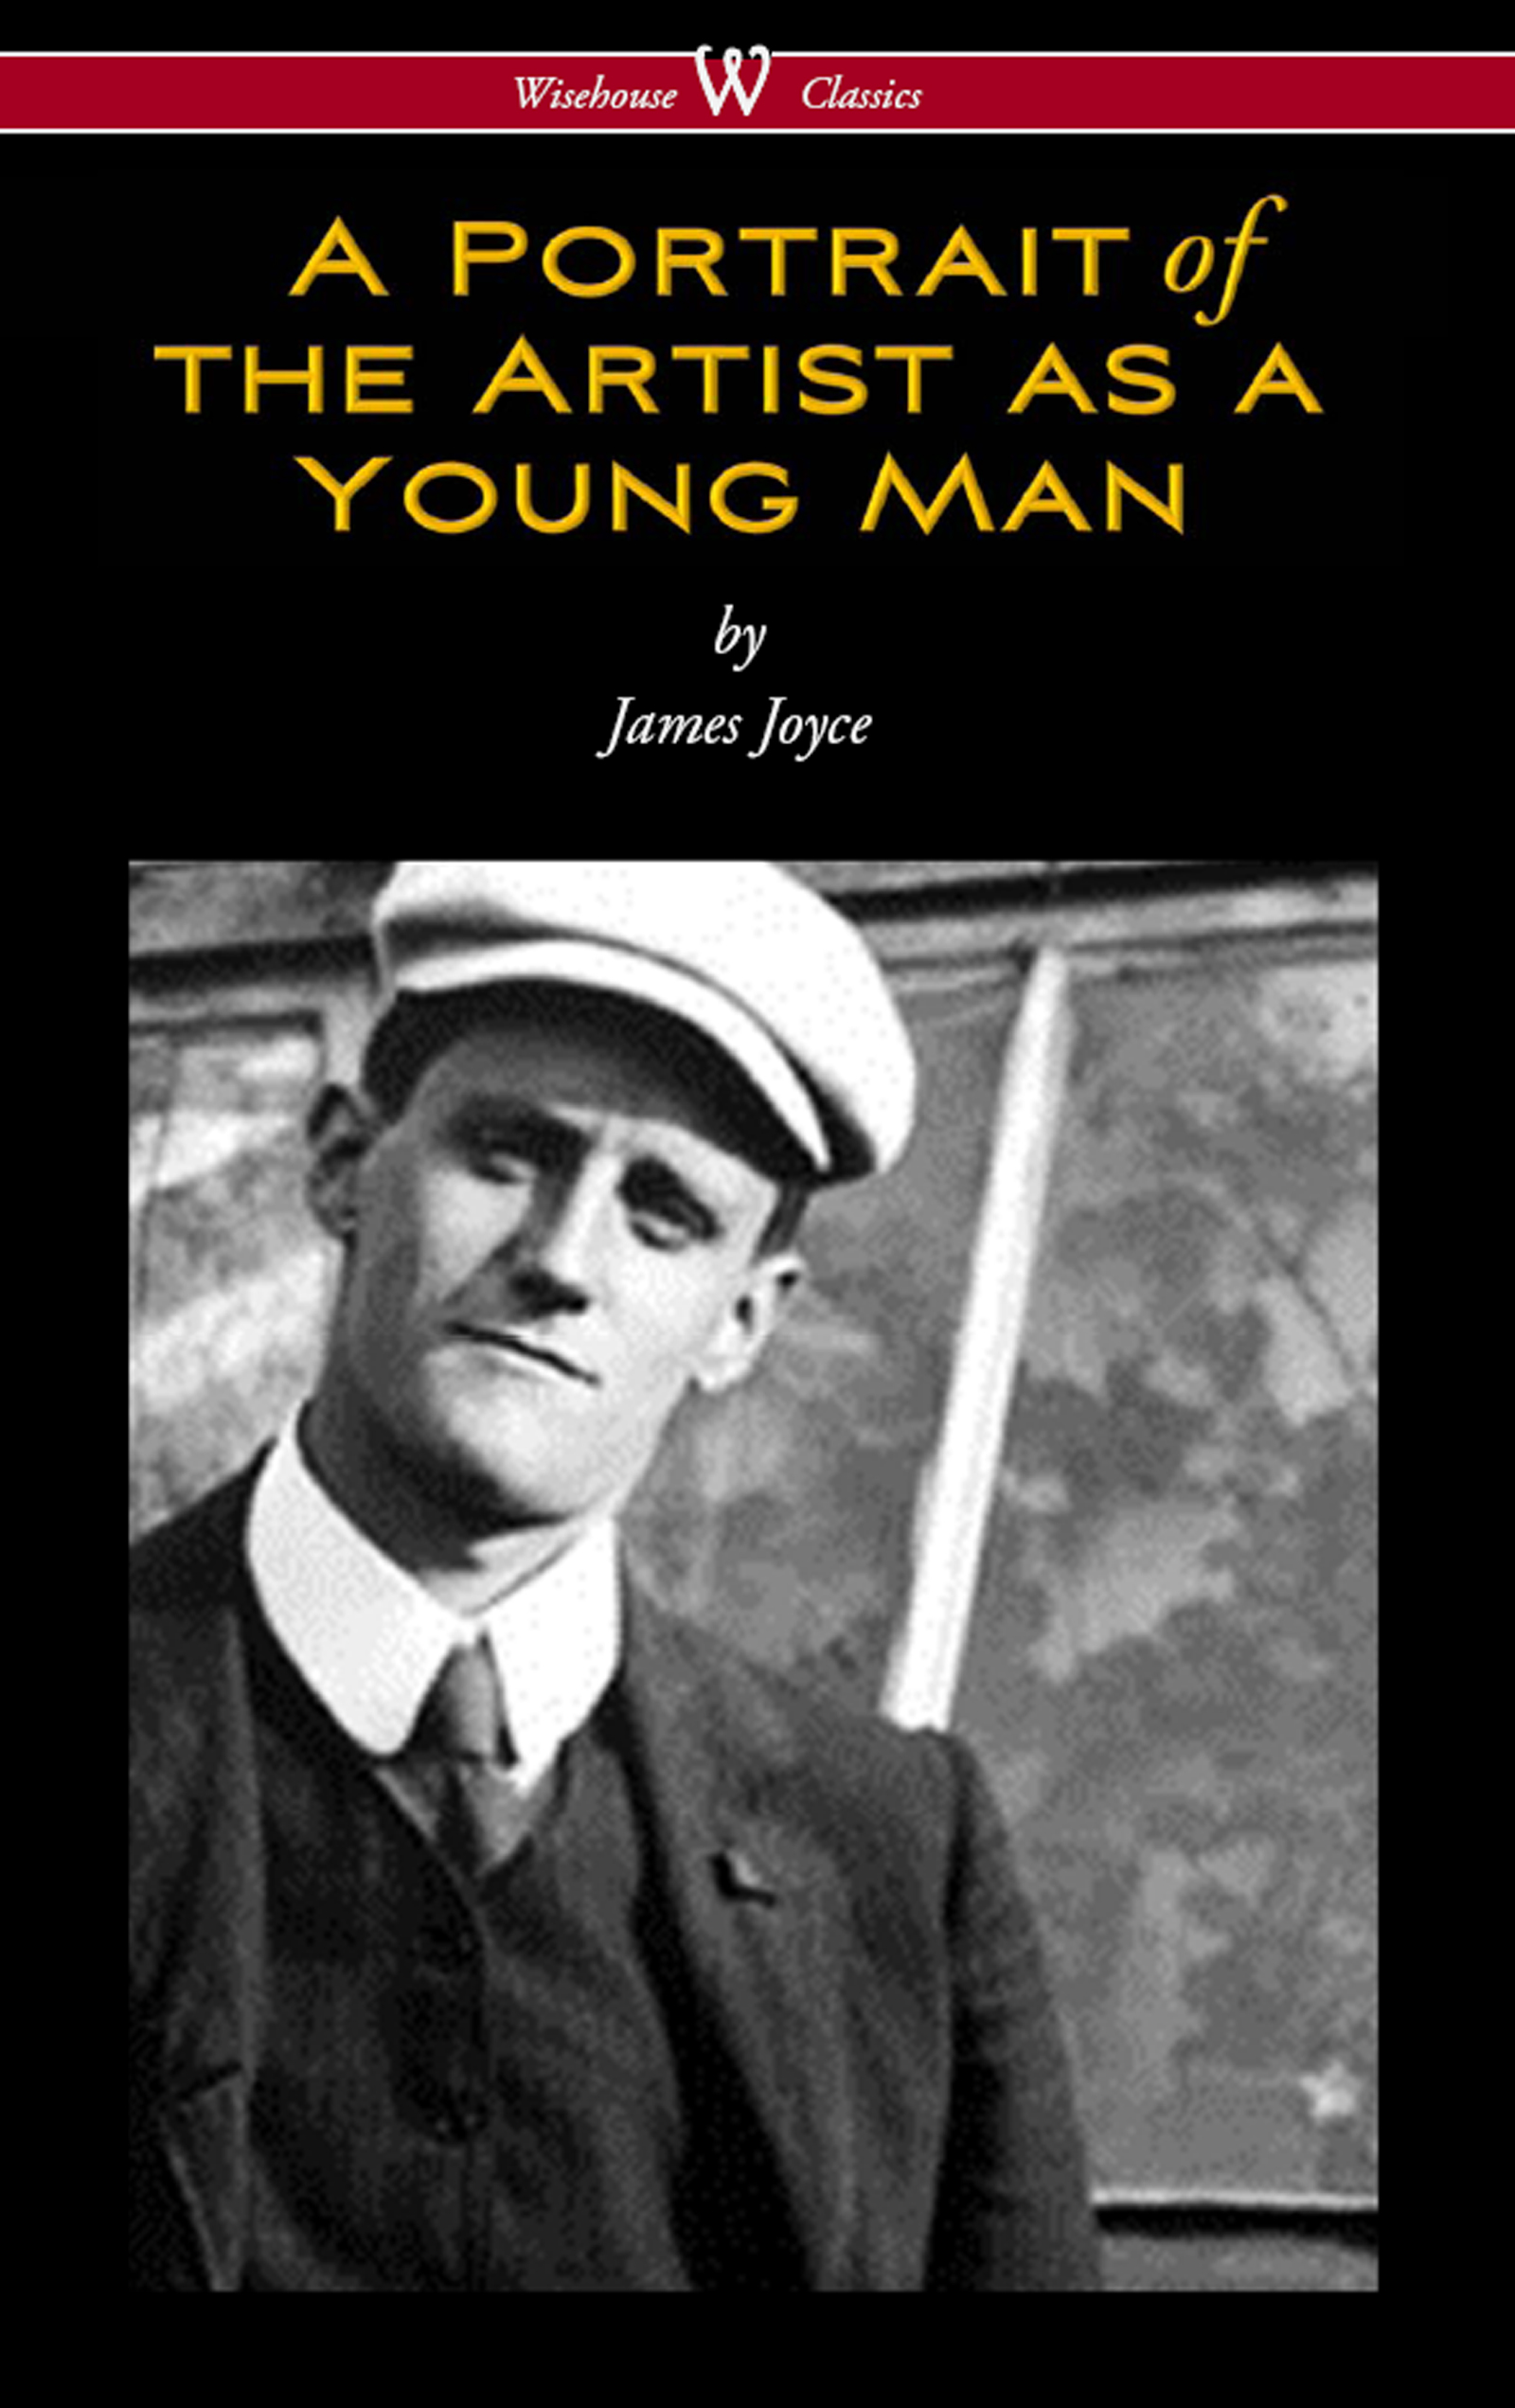 an analysis of religion in a portrait of the artist by james joyce